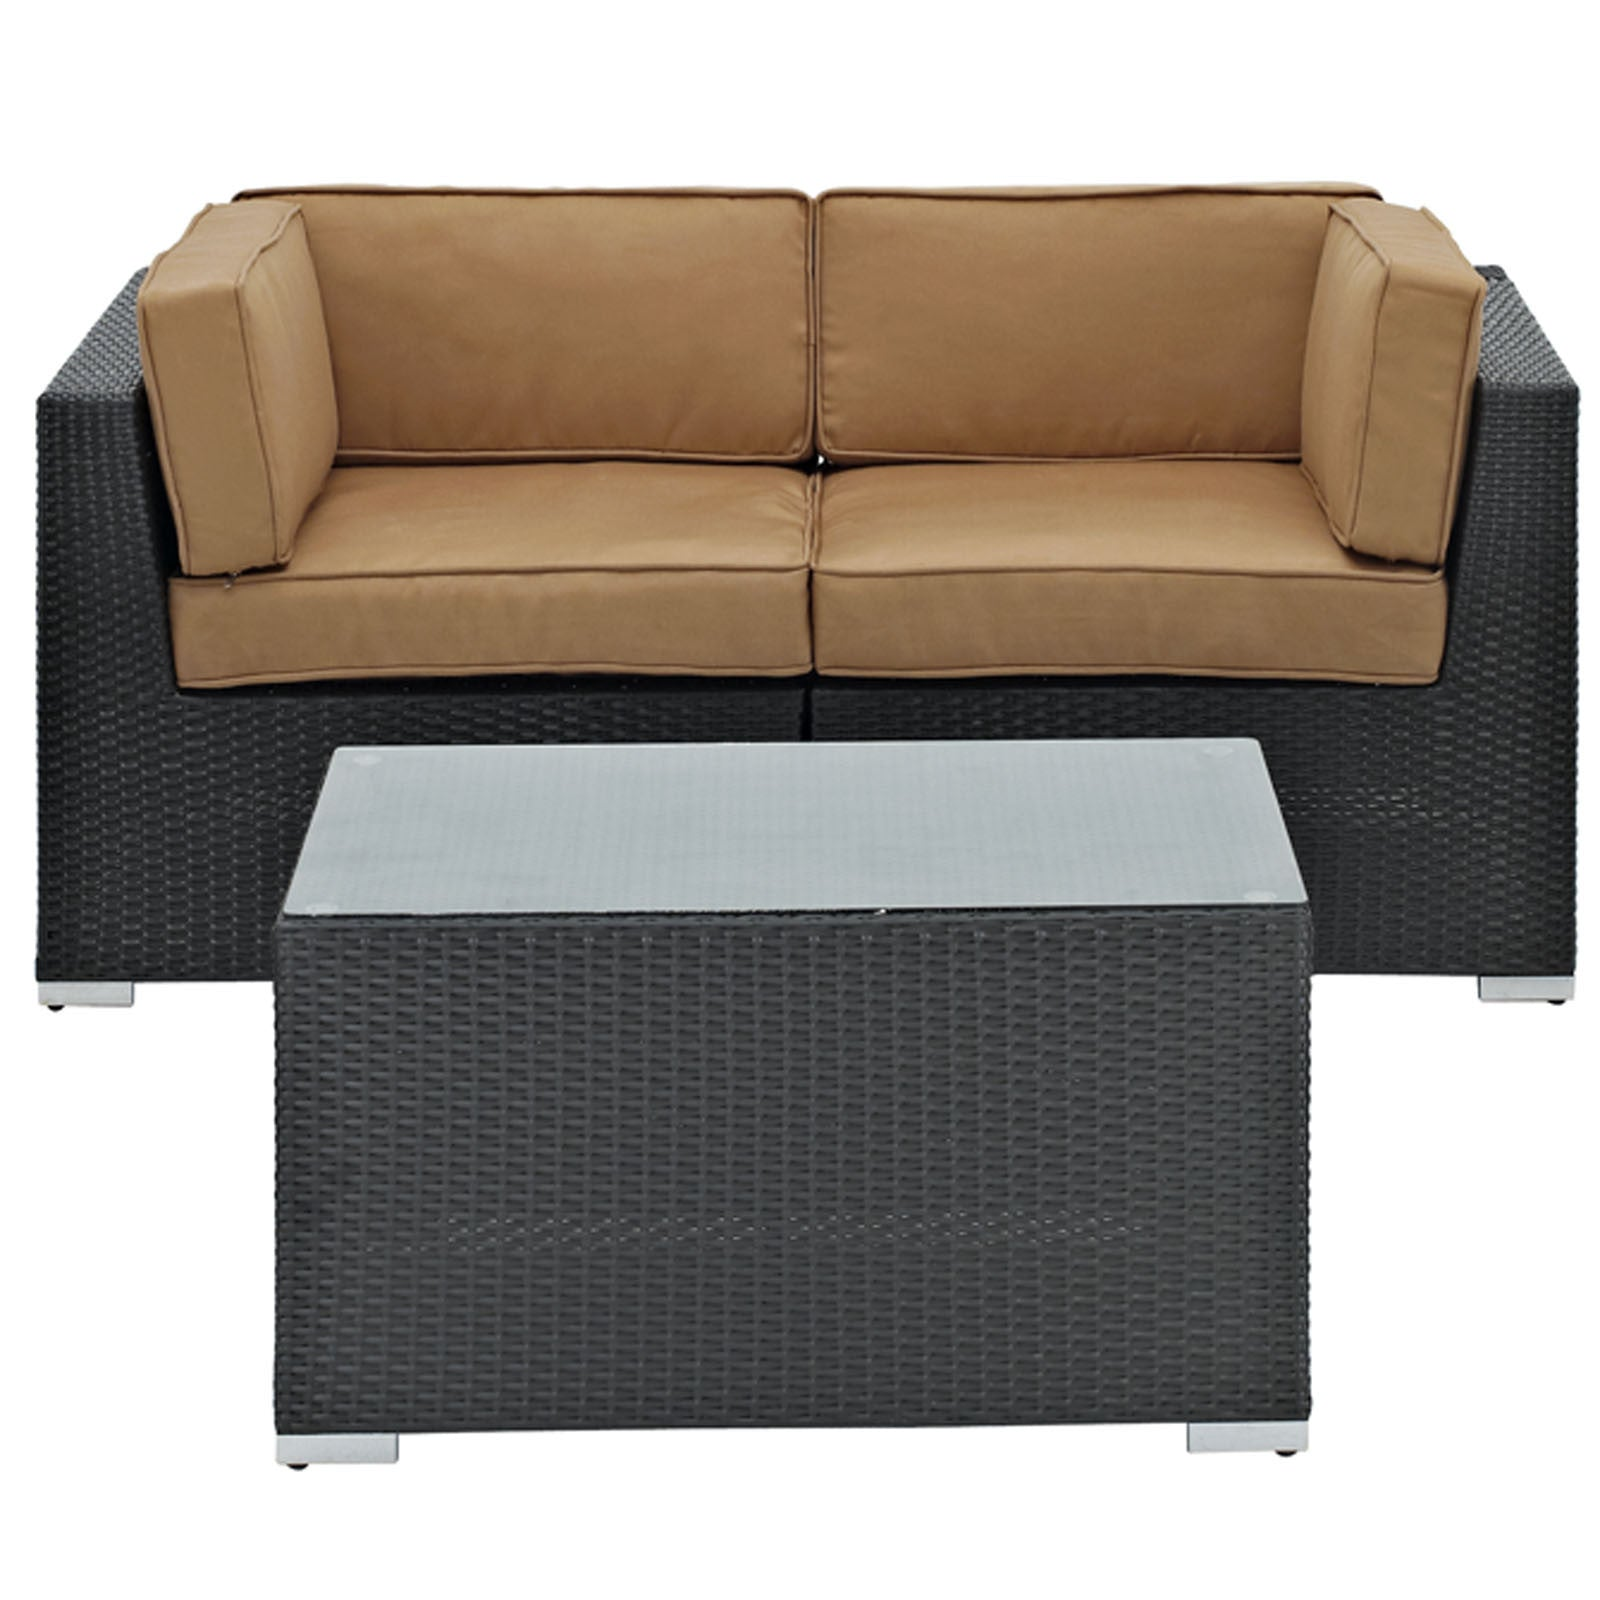 brown set patio source outdoor. Camfora 3 Piece Sectional Set - The Modern Source Brown Patio Outdoor G